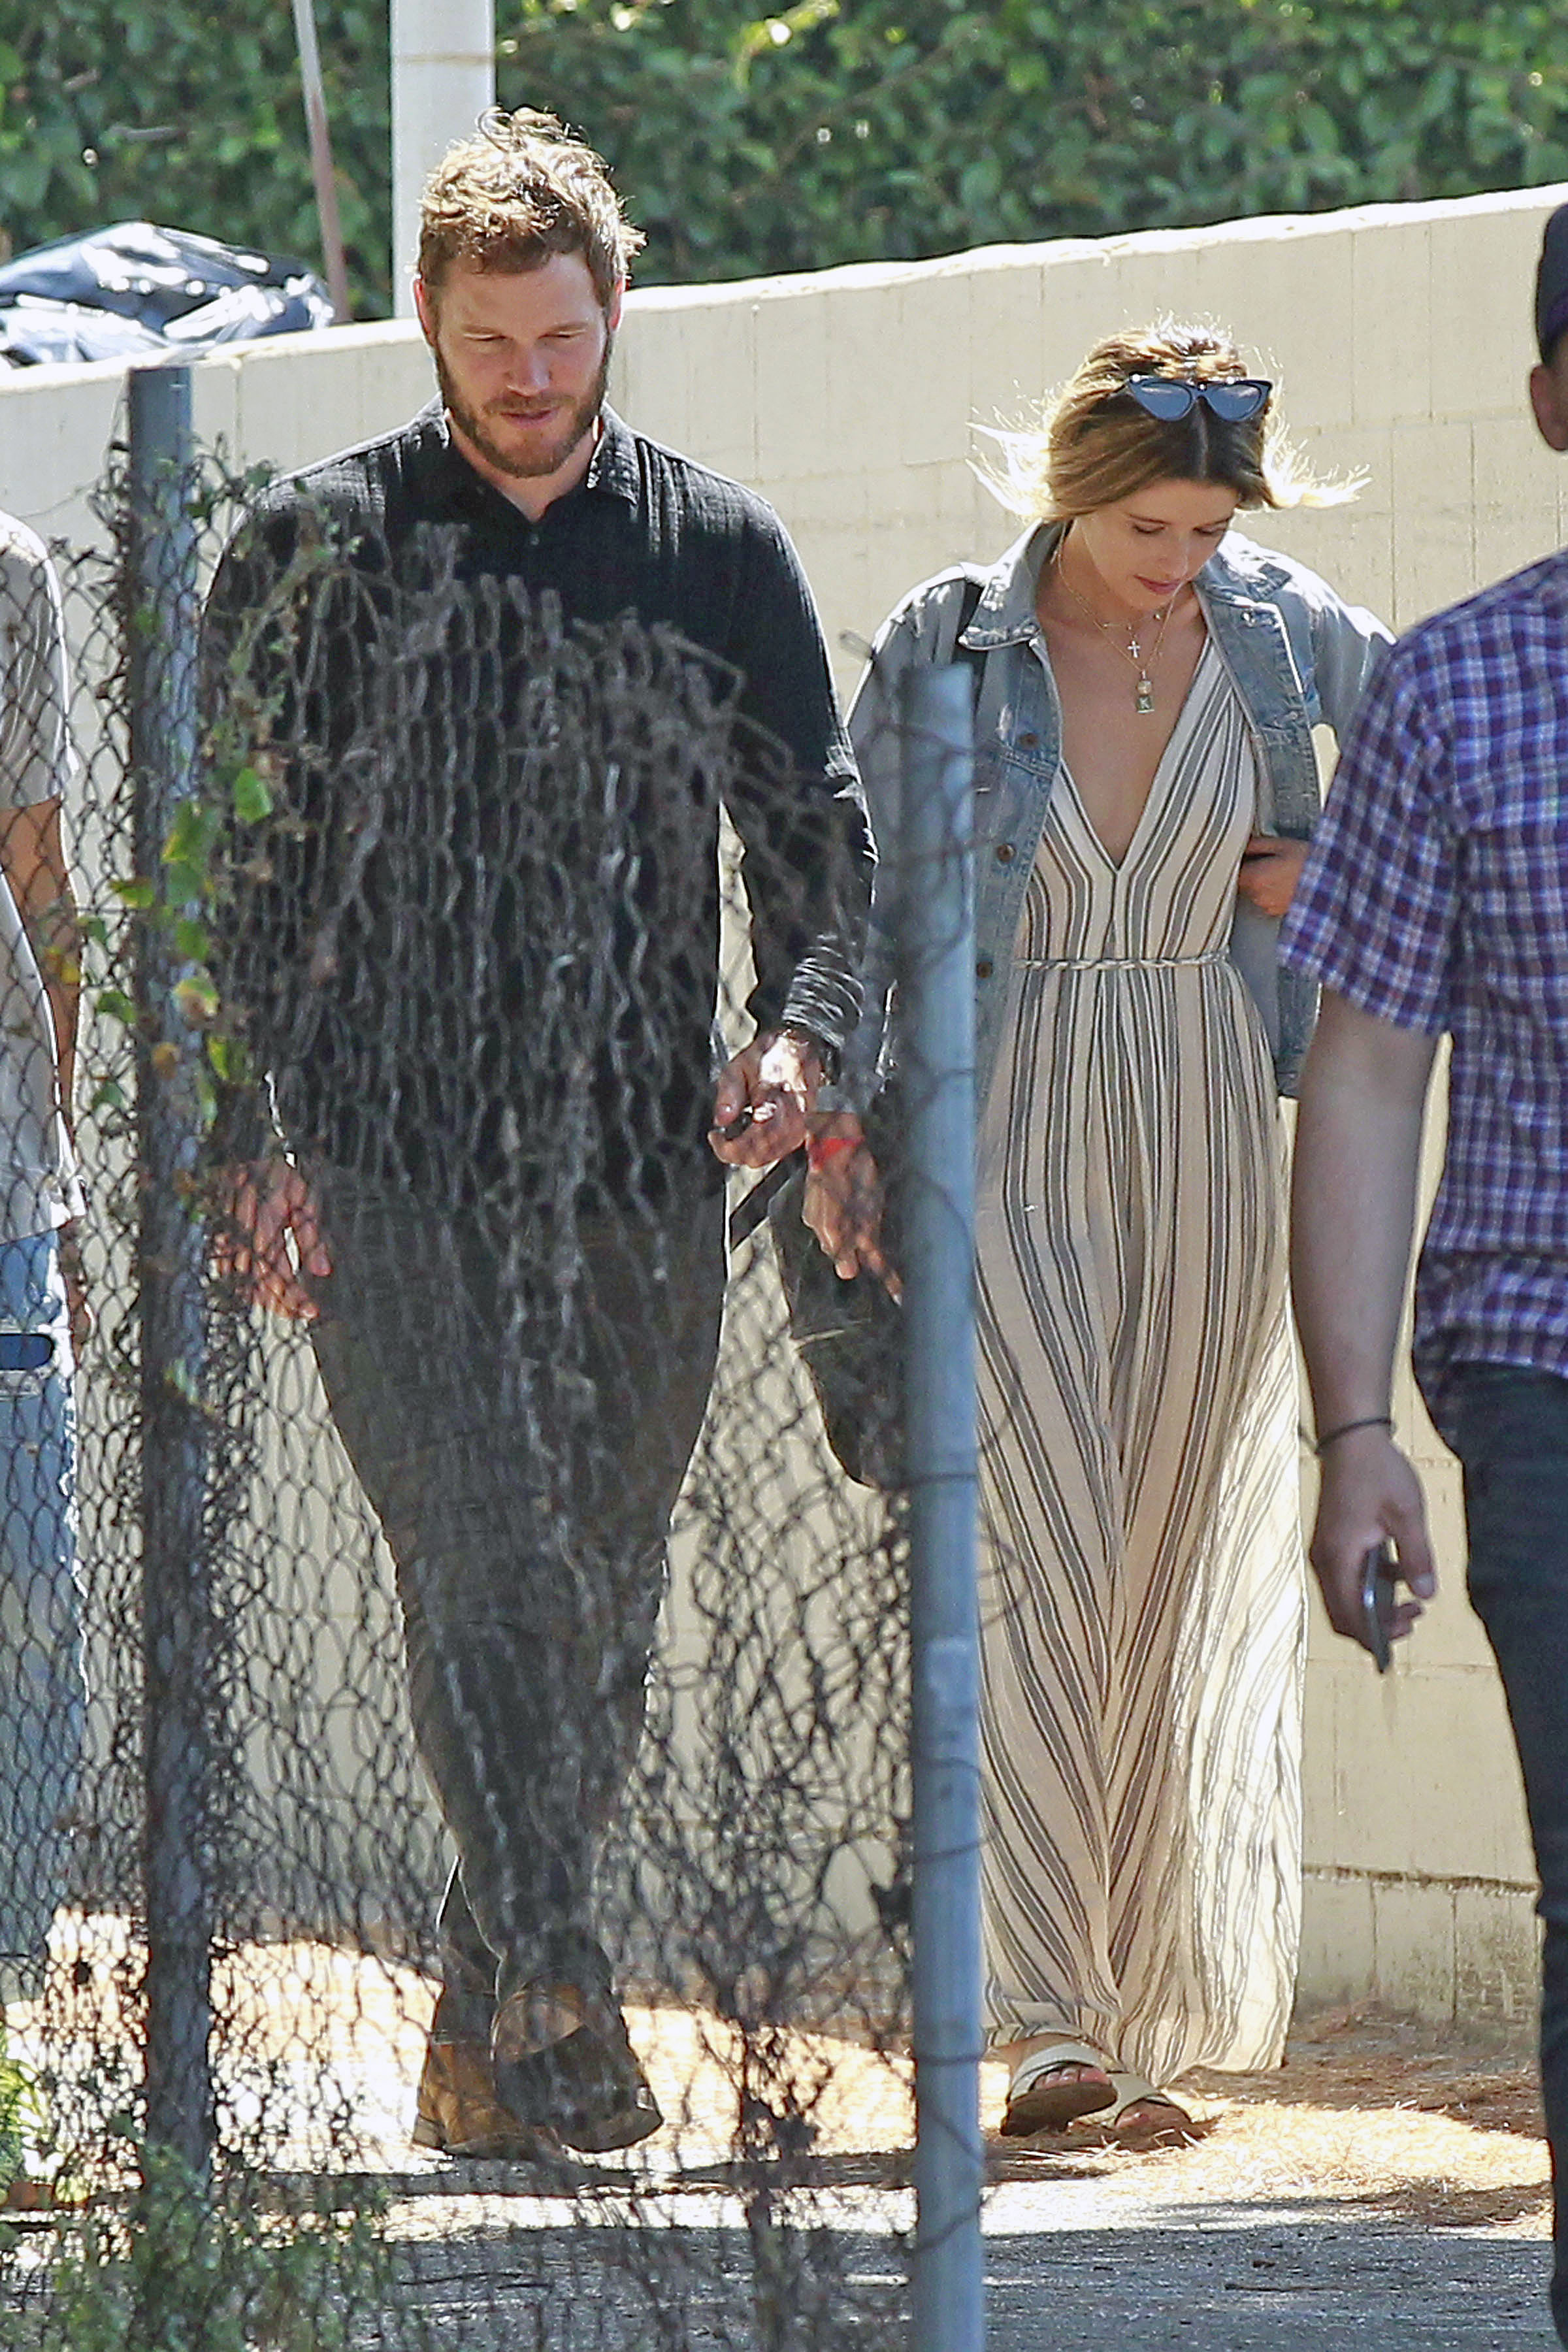 Chris Pratt and Katherine Schwarzenegger attend church services together in Los Angeles on Aug. 5, 2018.